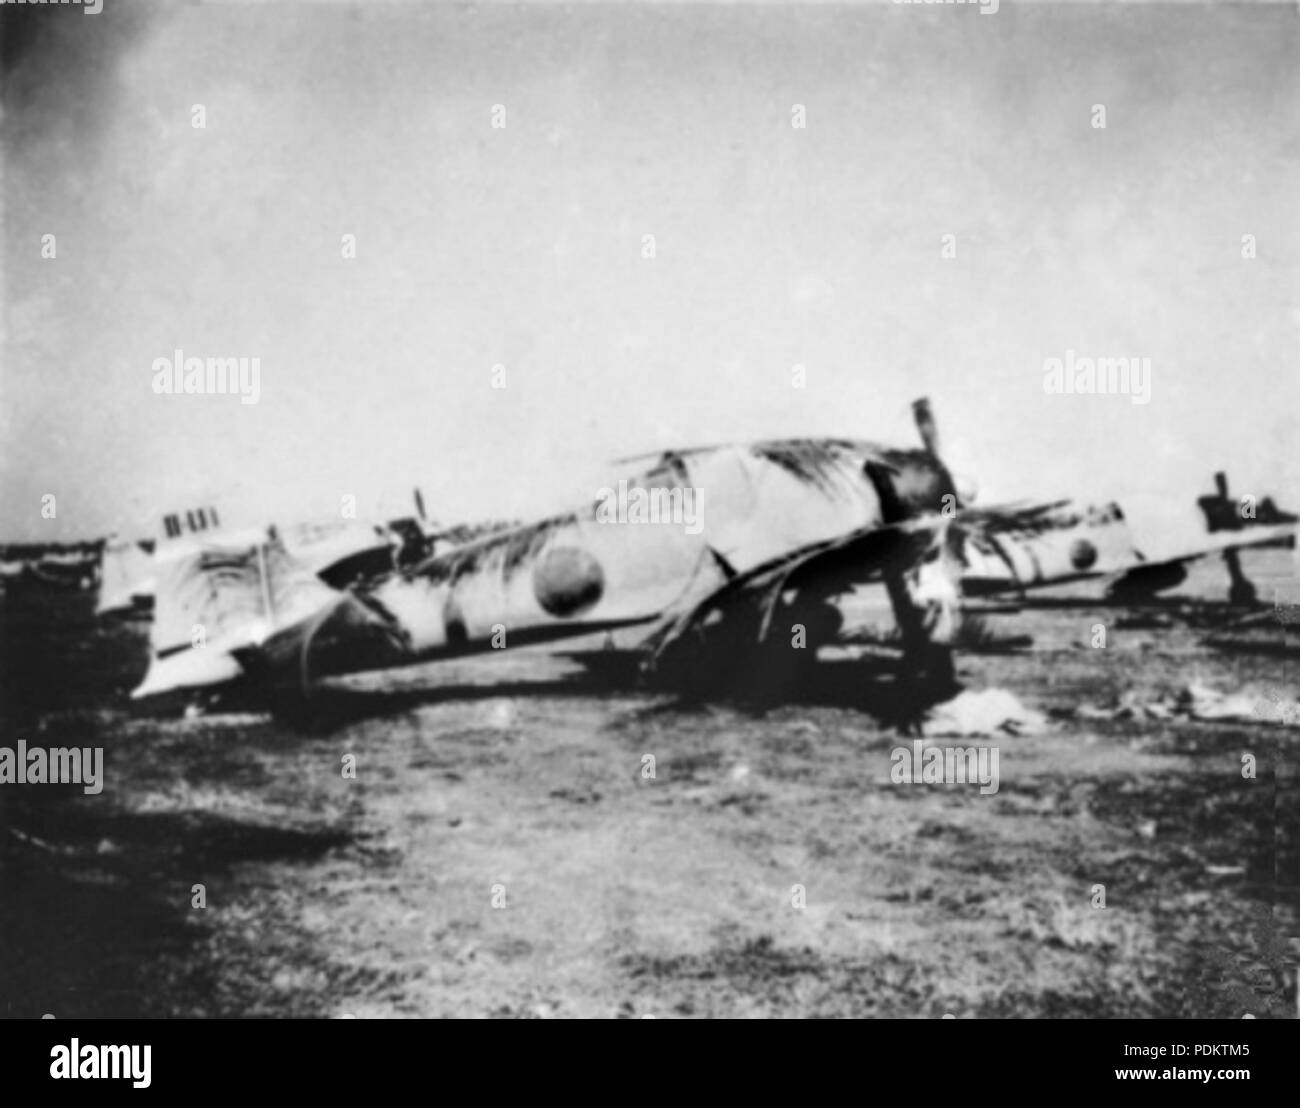 9 A6M2s at Kota Bharu airfield c1942 - Stock Image